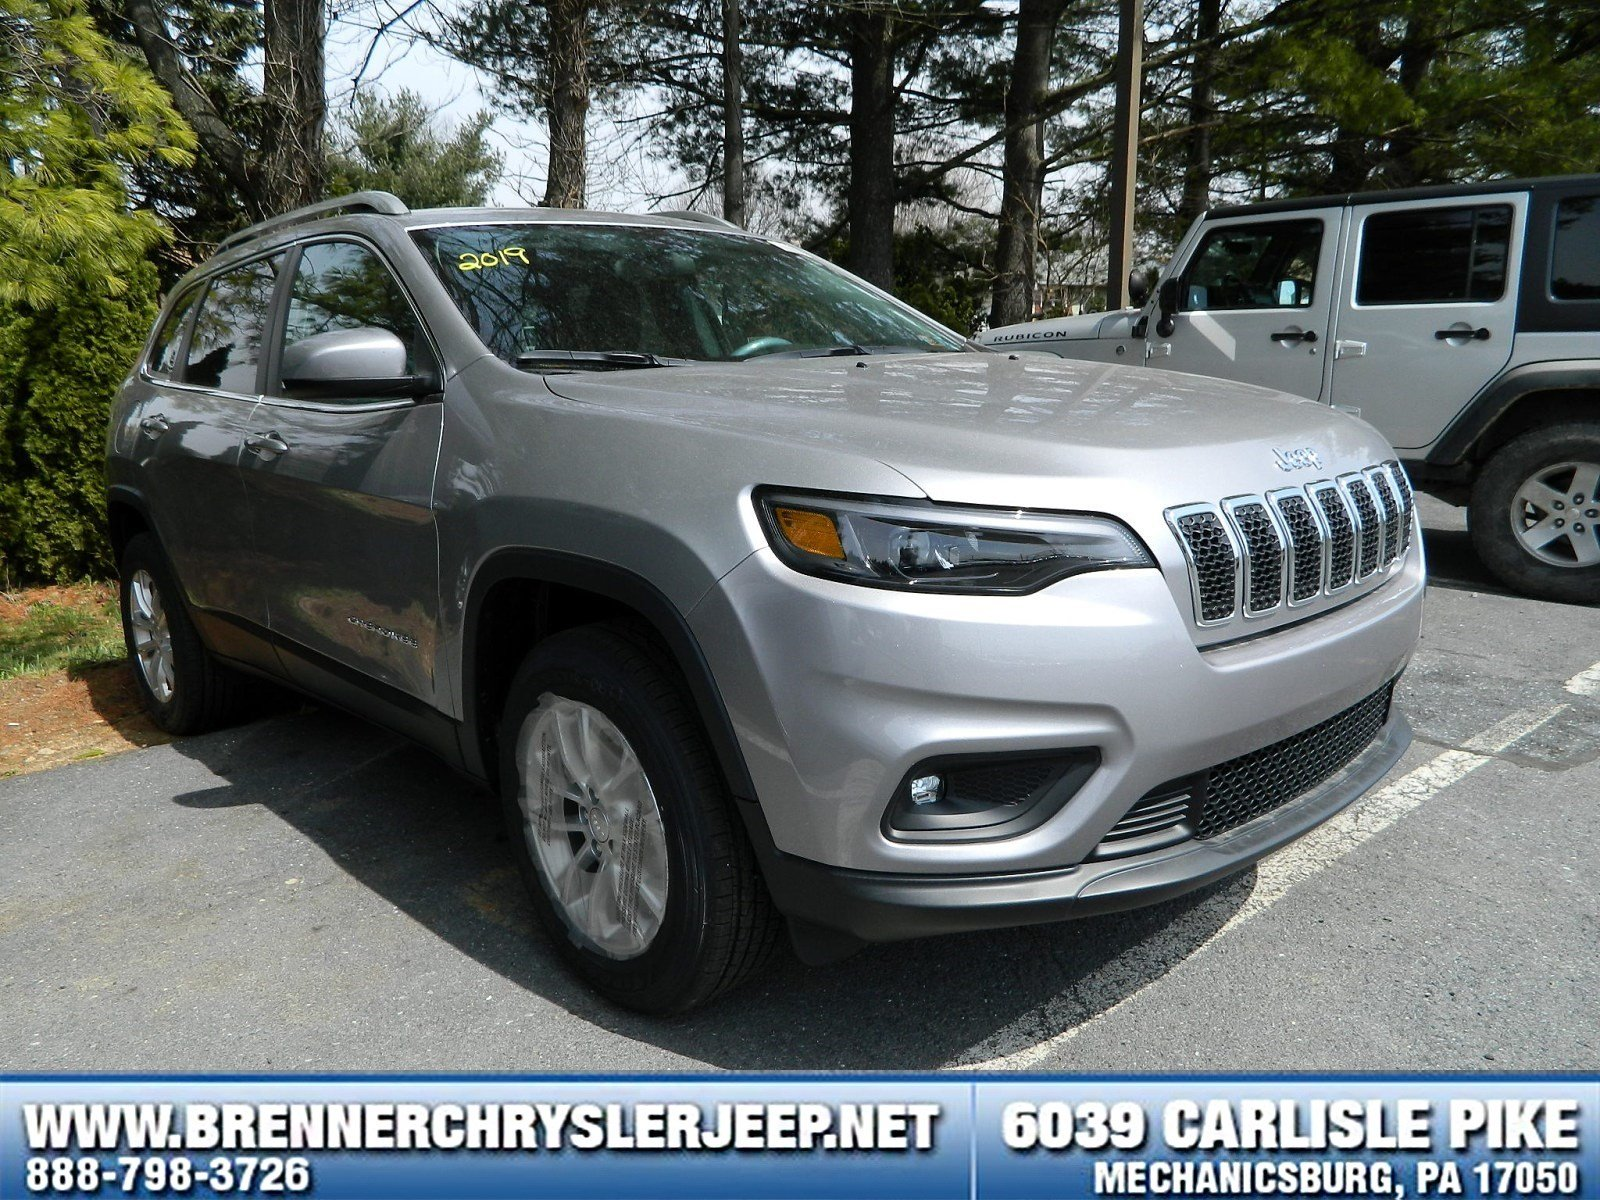 Brenner Chrysler Jeep >> Brenner Chrysler Jeep 2020 Top Car Release And Models